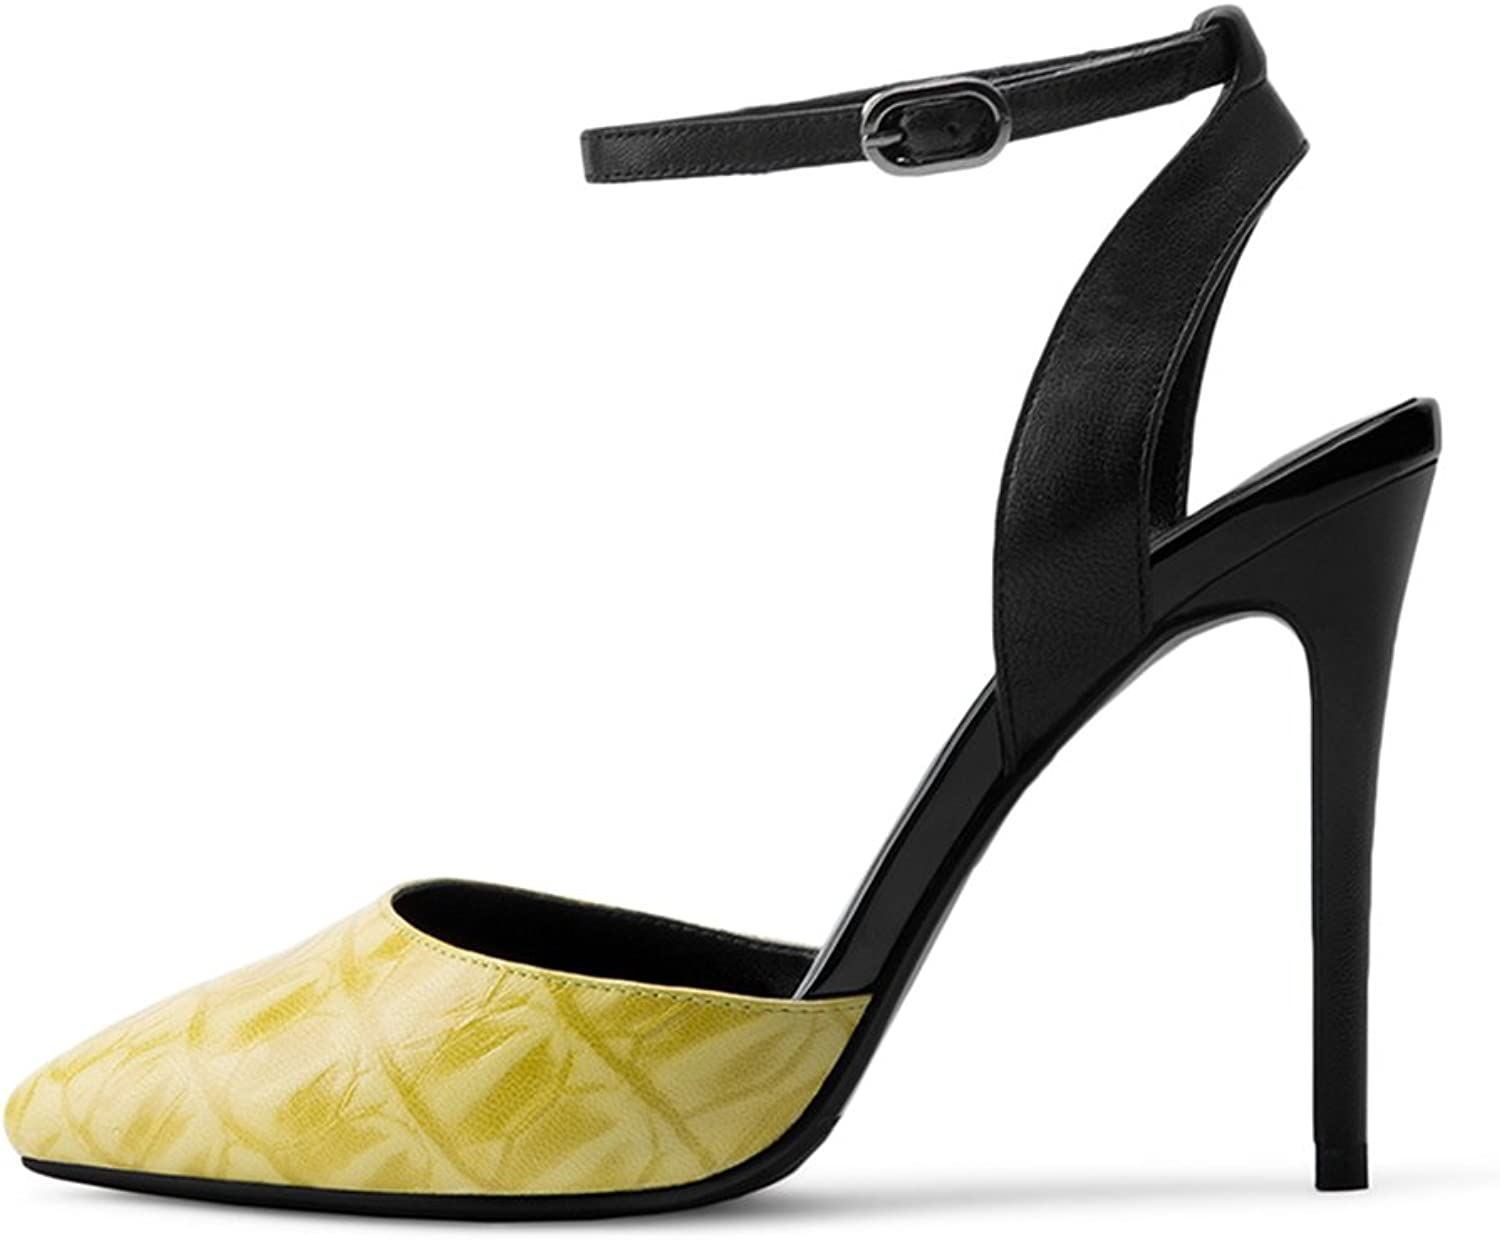 QIDI Sandals Summer High Heel Female Pointed Baotou High Heel Single shoes (color   Yellow)